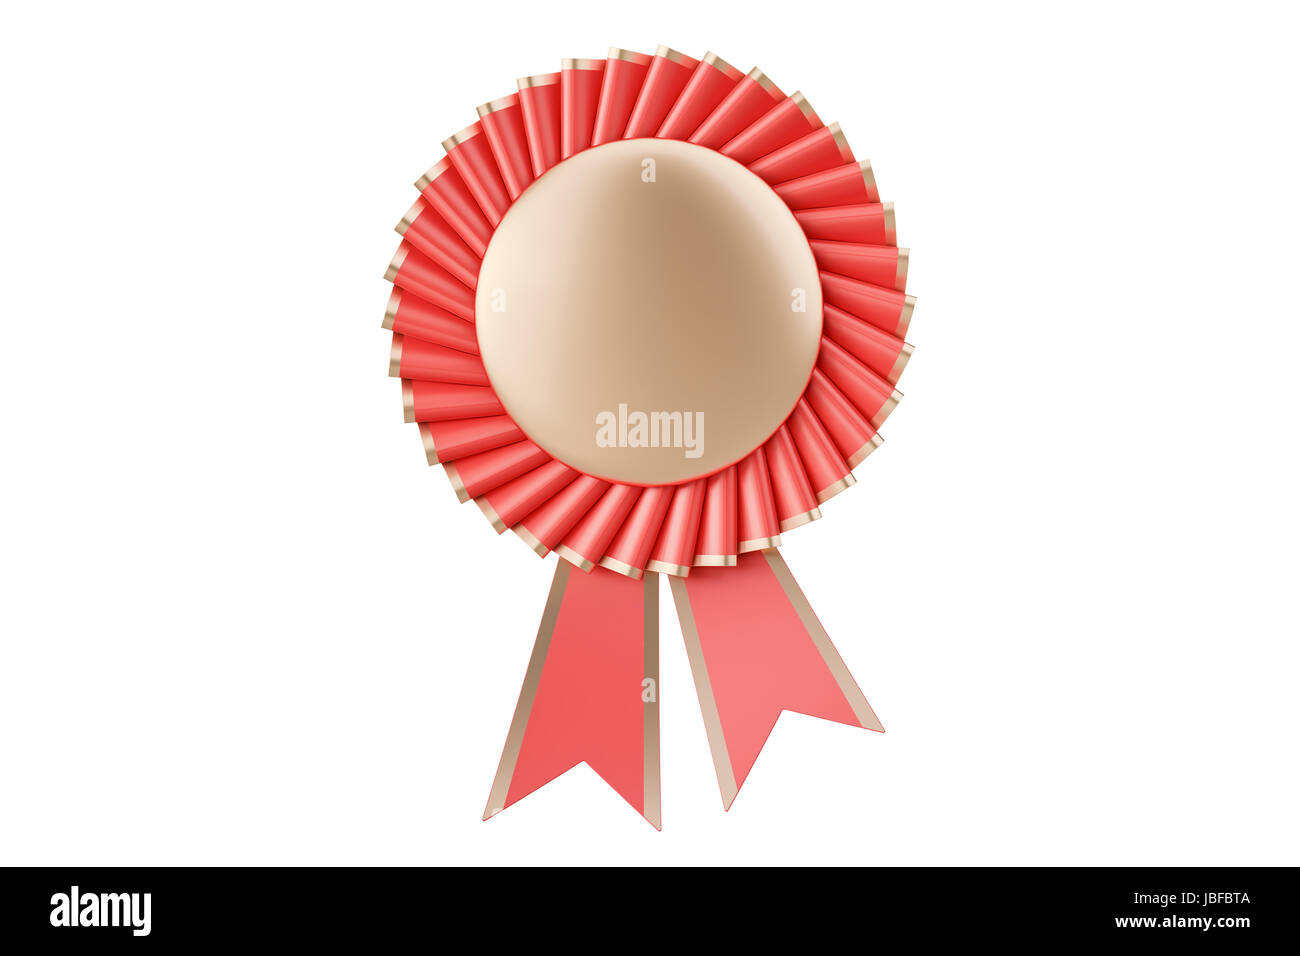 Red rosette winning award, prize, medal or badge with ribbons. 3D rendering isolated on white background - Stock Image